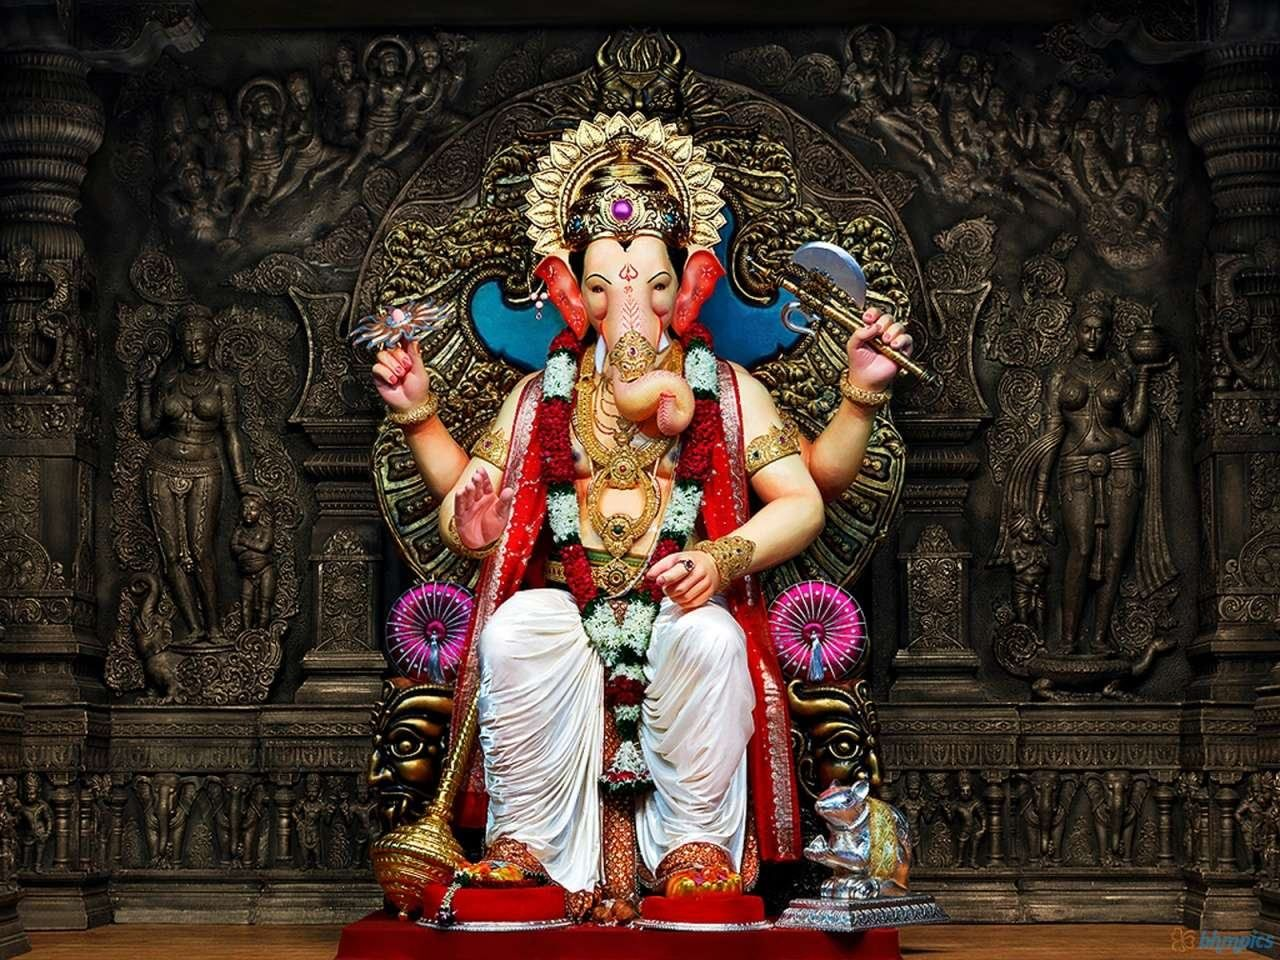 Happy ganesh chaturthi images hd wallpapers photos pics 2015 happy ganesh chaturthi images hd wallpapers photos pics 2015 thecheapjerseys Image collections